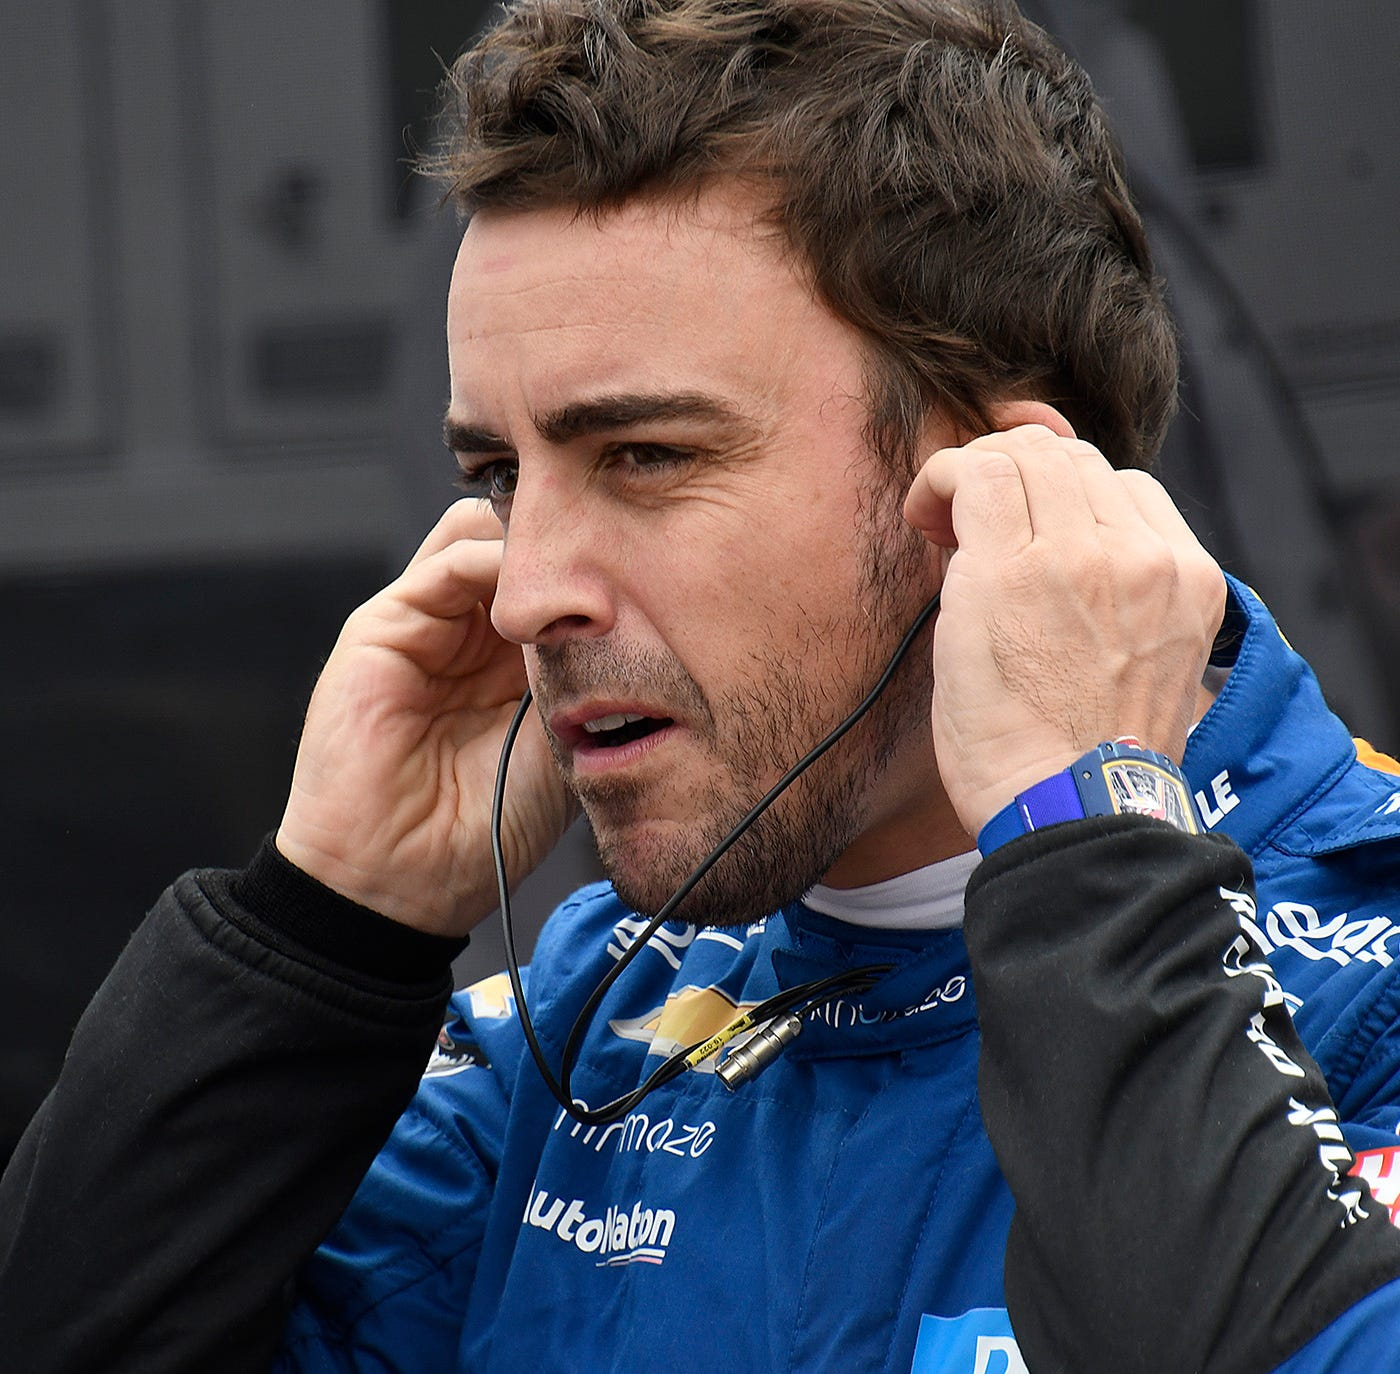 Fernando Alonso in danger of Indy 500 bump, says McLaren was 'not ready for challenge'